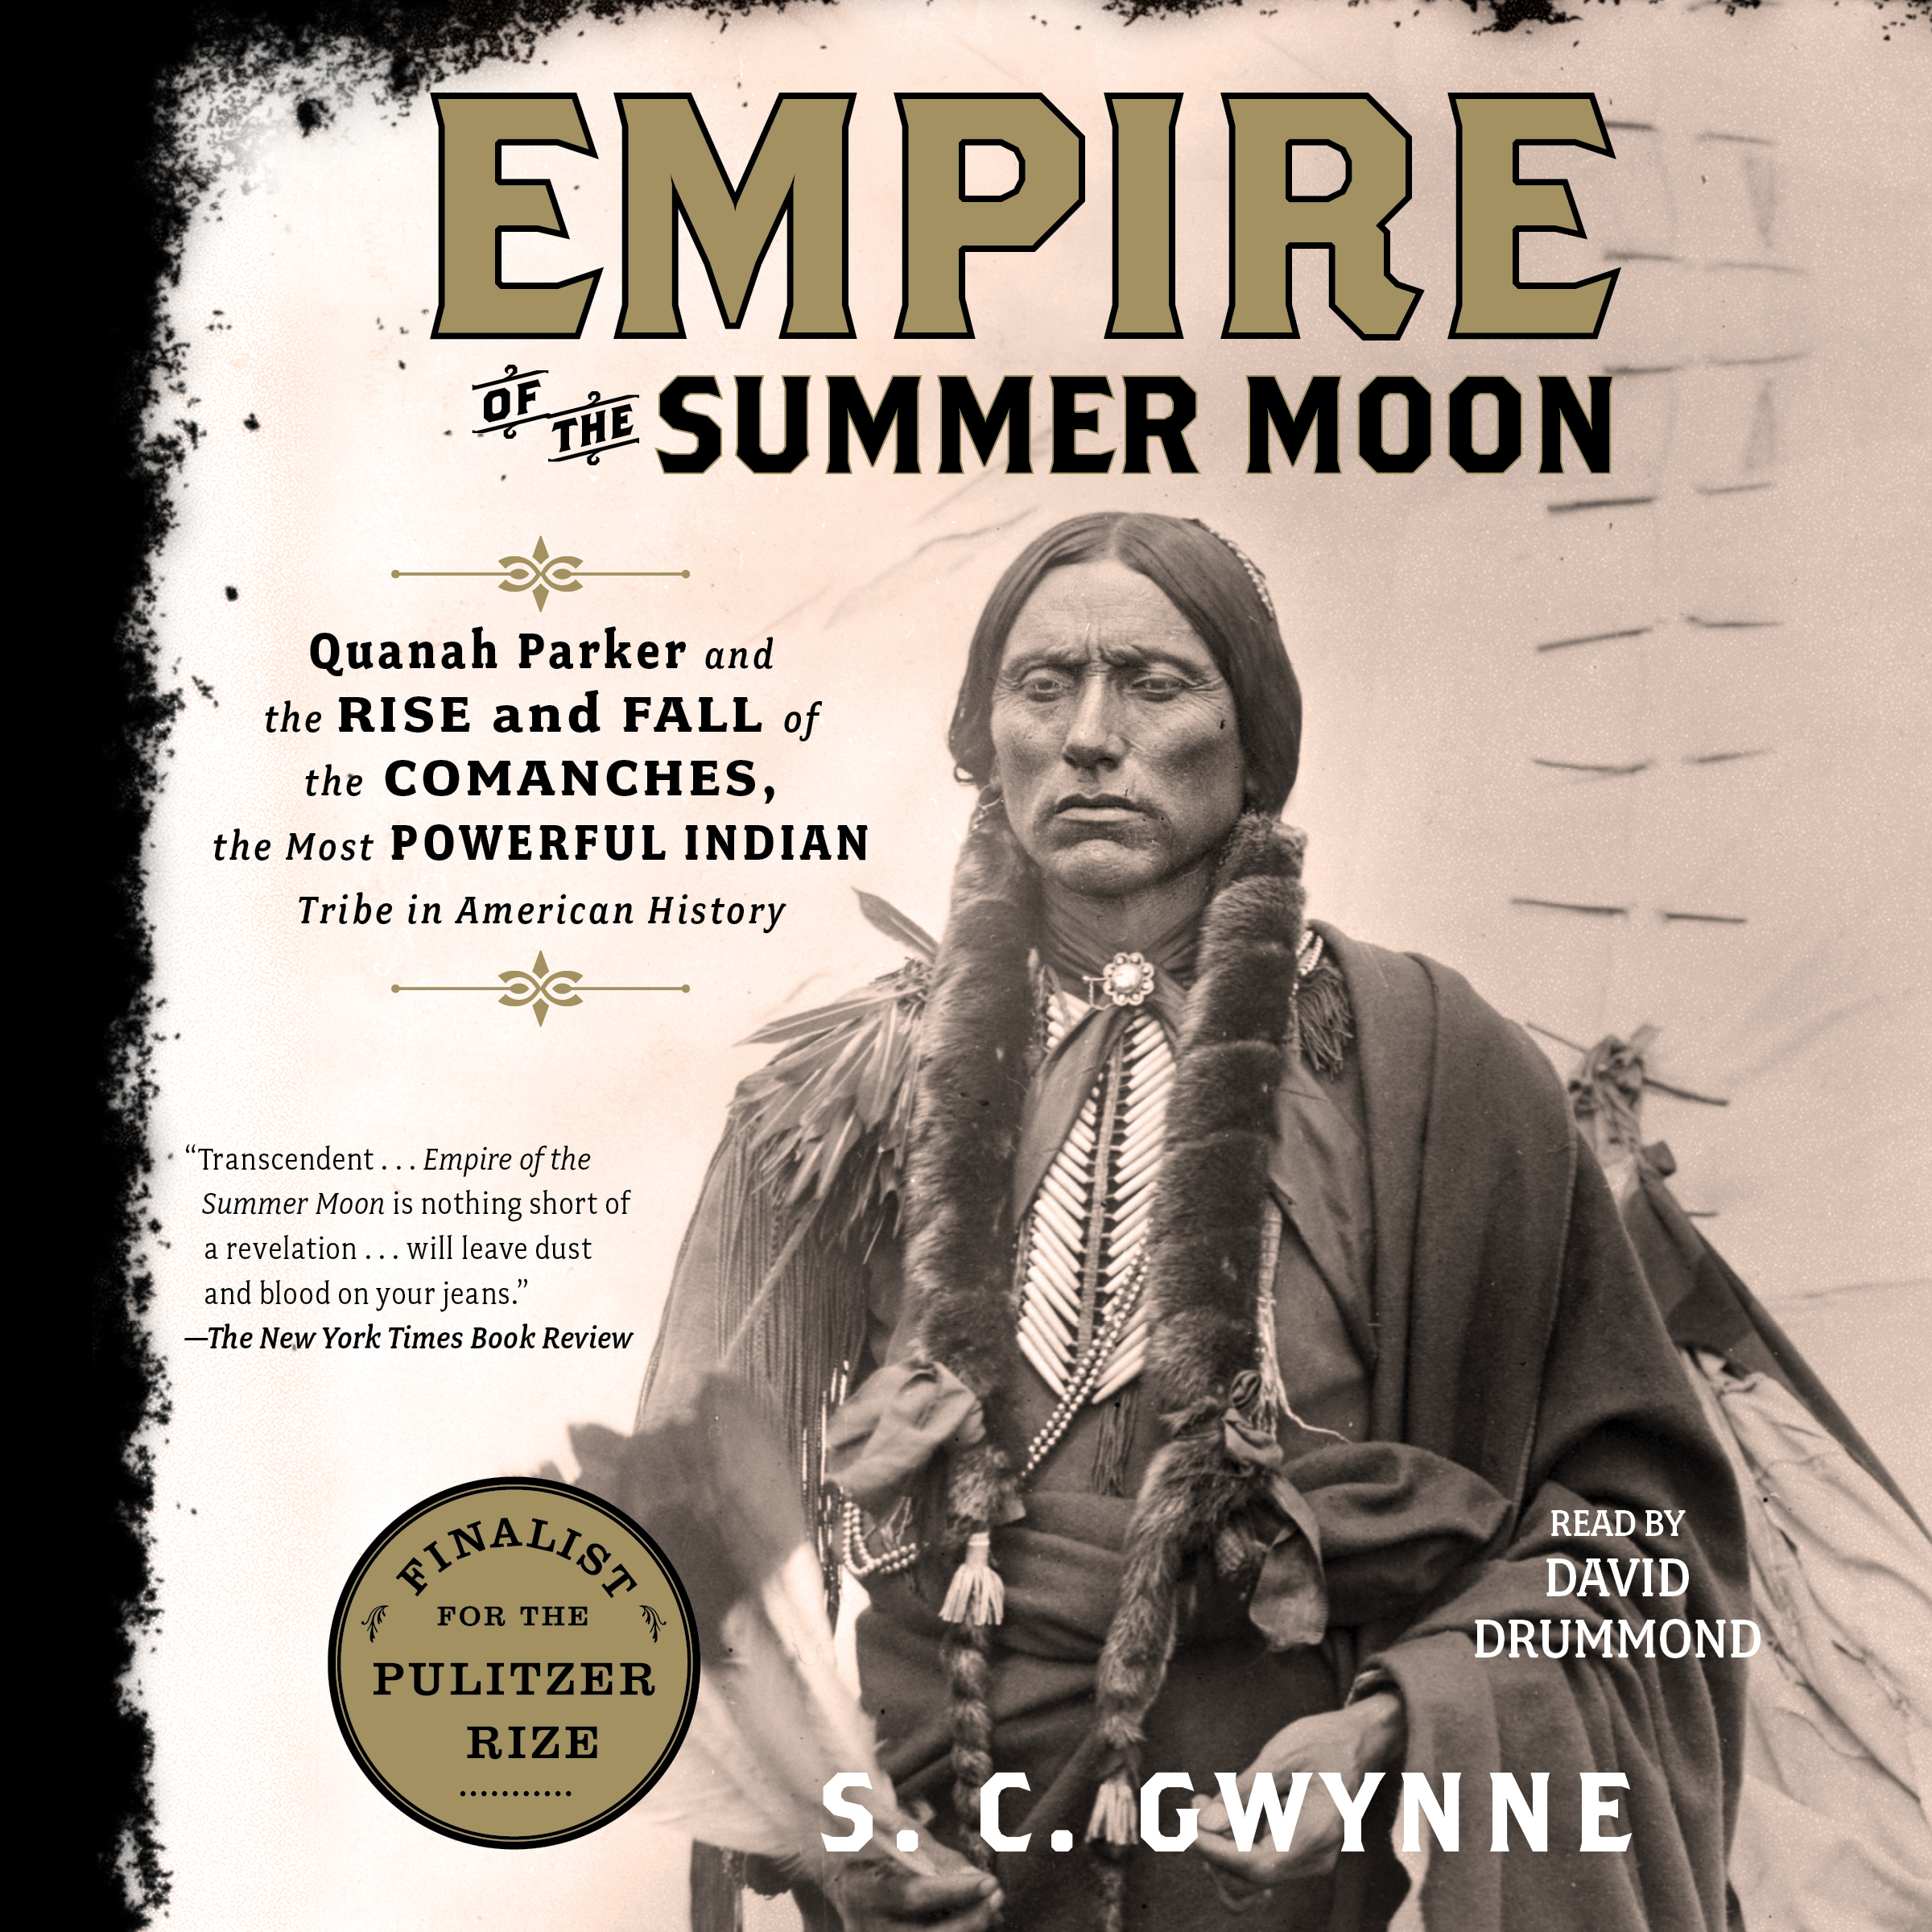 image for Empire of the Summer Moon